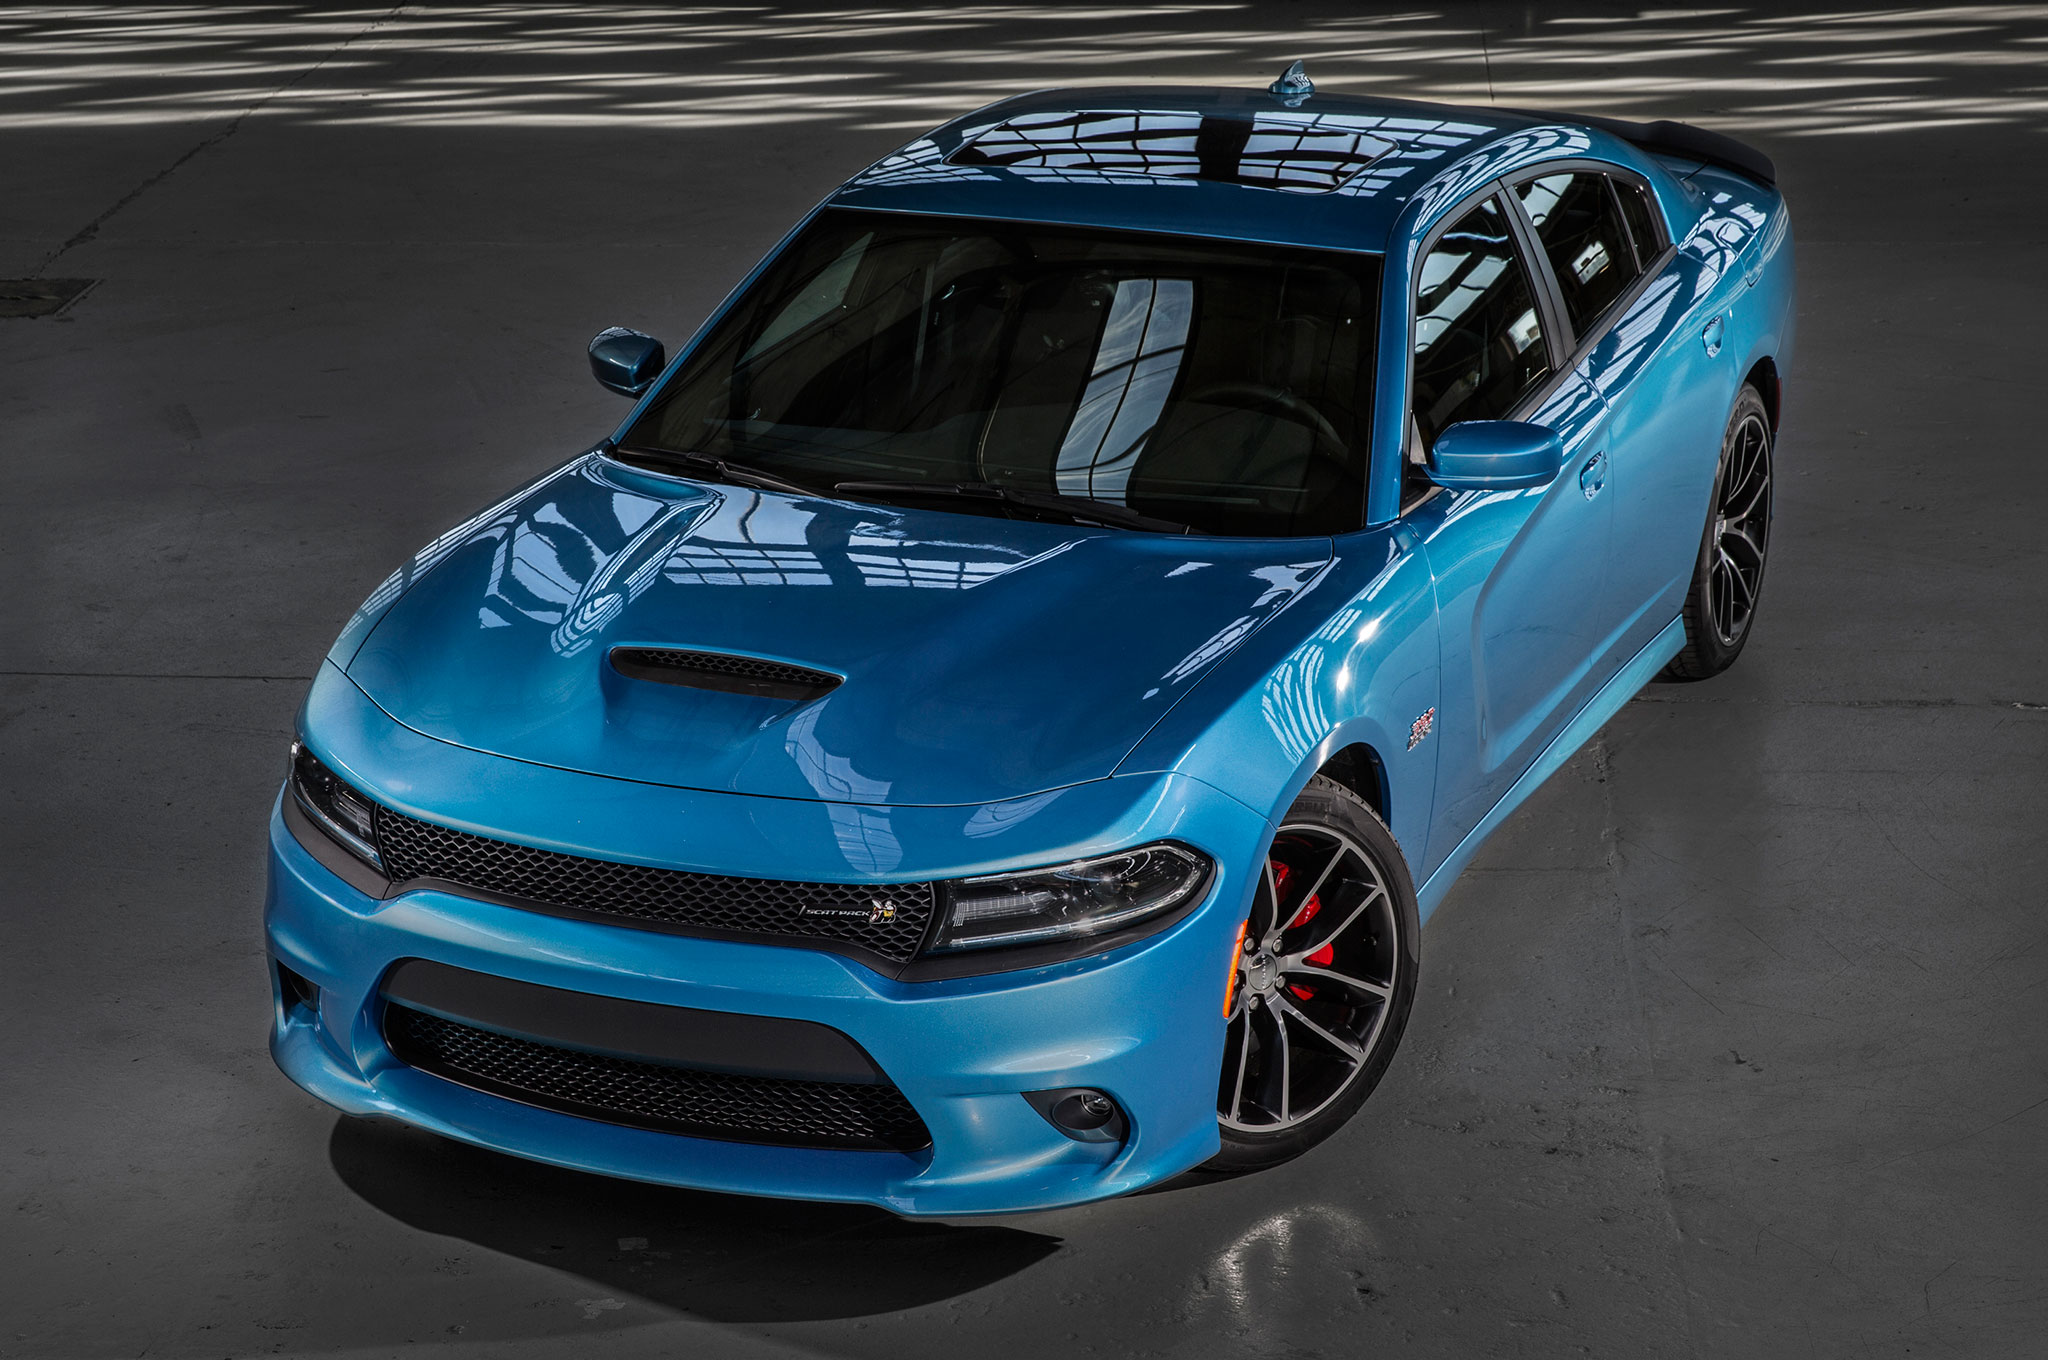 See And Hear The 2015 Dodge Charger Srt Hellcat At Top Speed